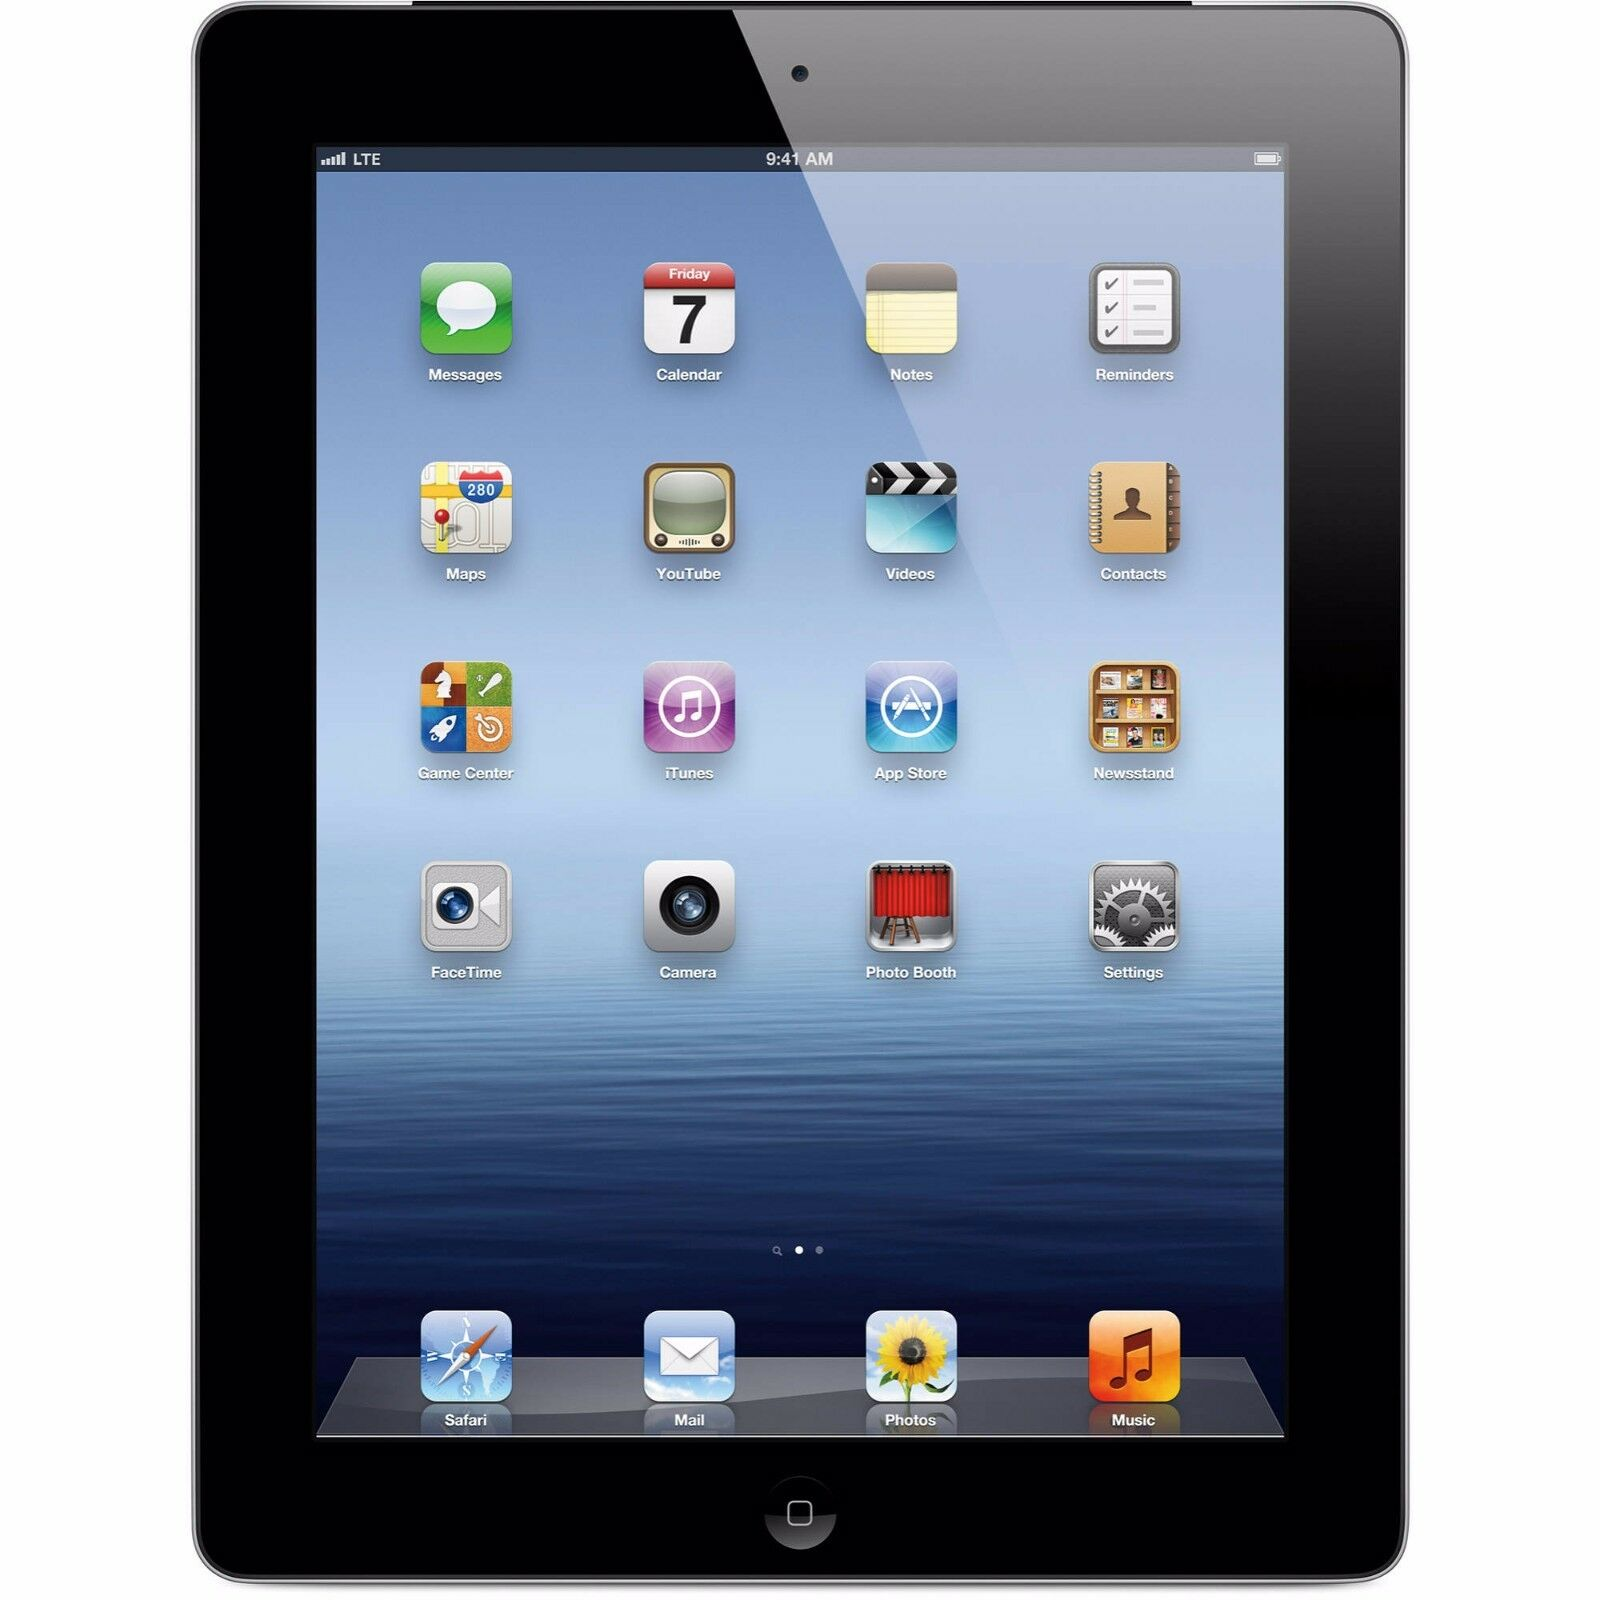 Ipad 2 - Apple iPad 2 64GB, Wi-Fi + 3G (Unlocked), 9.7in - Black (R-D)